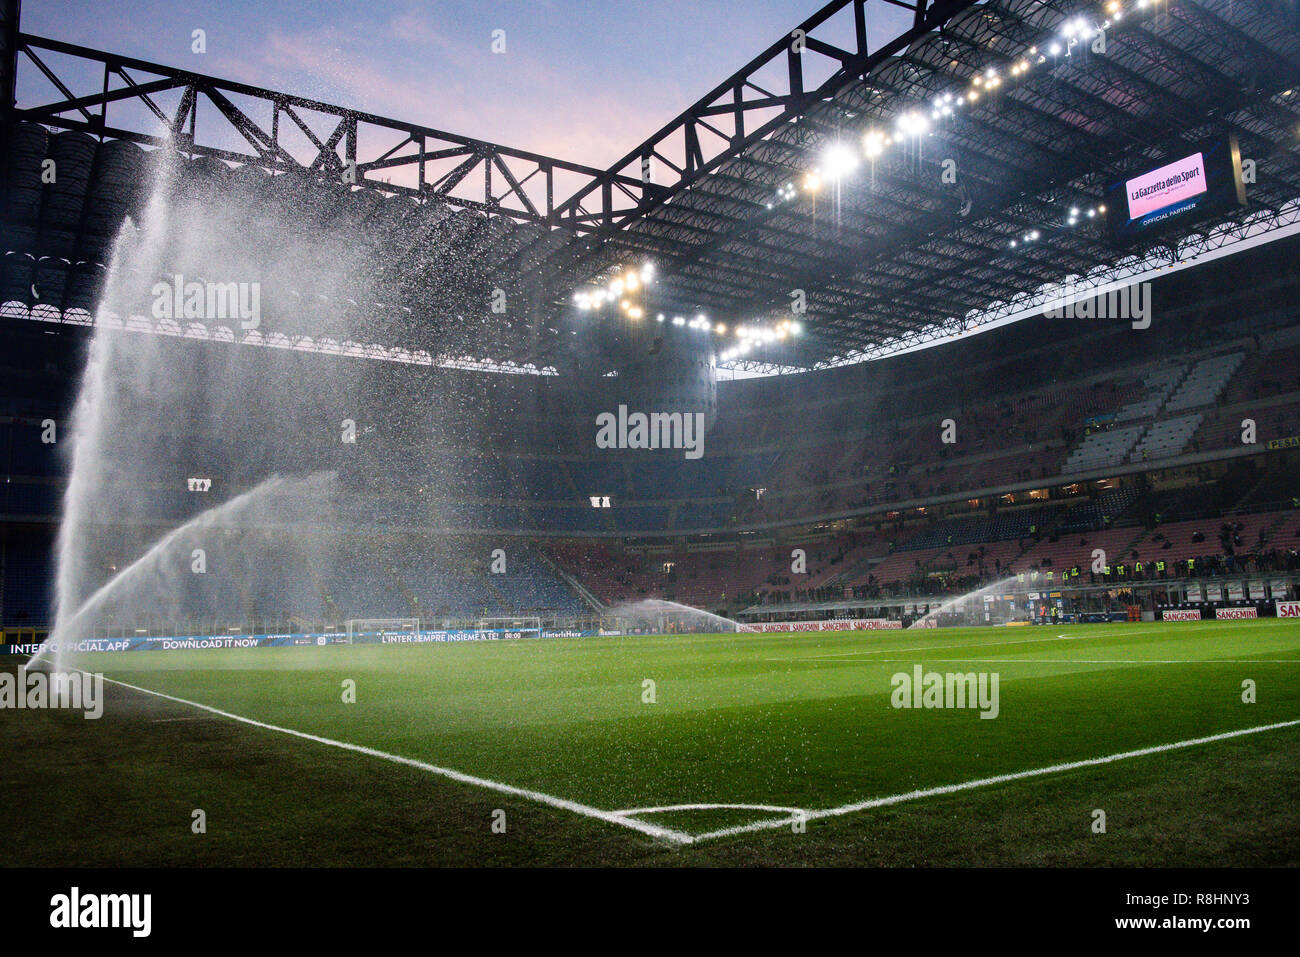 Milan, Italy. 15th Dec 2018. A general view of the stadium at sunset before the Serie A football match, Inter Milan vs Udinese Calcio at San Siro Meazza Stadium in Milan, Italy on 15 December 2018 Credit: Piero Cruciatti/Alamy Live News Stock Photo